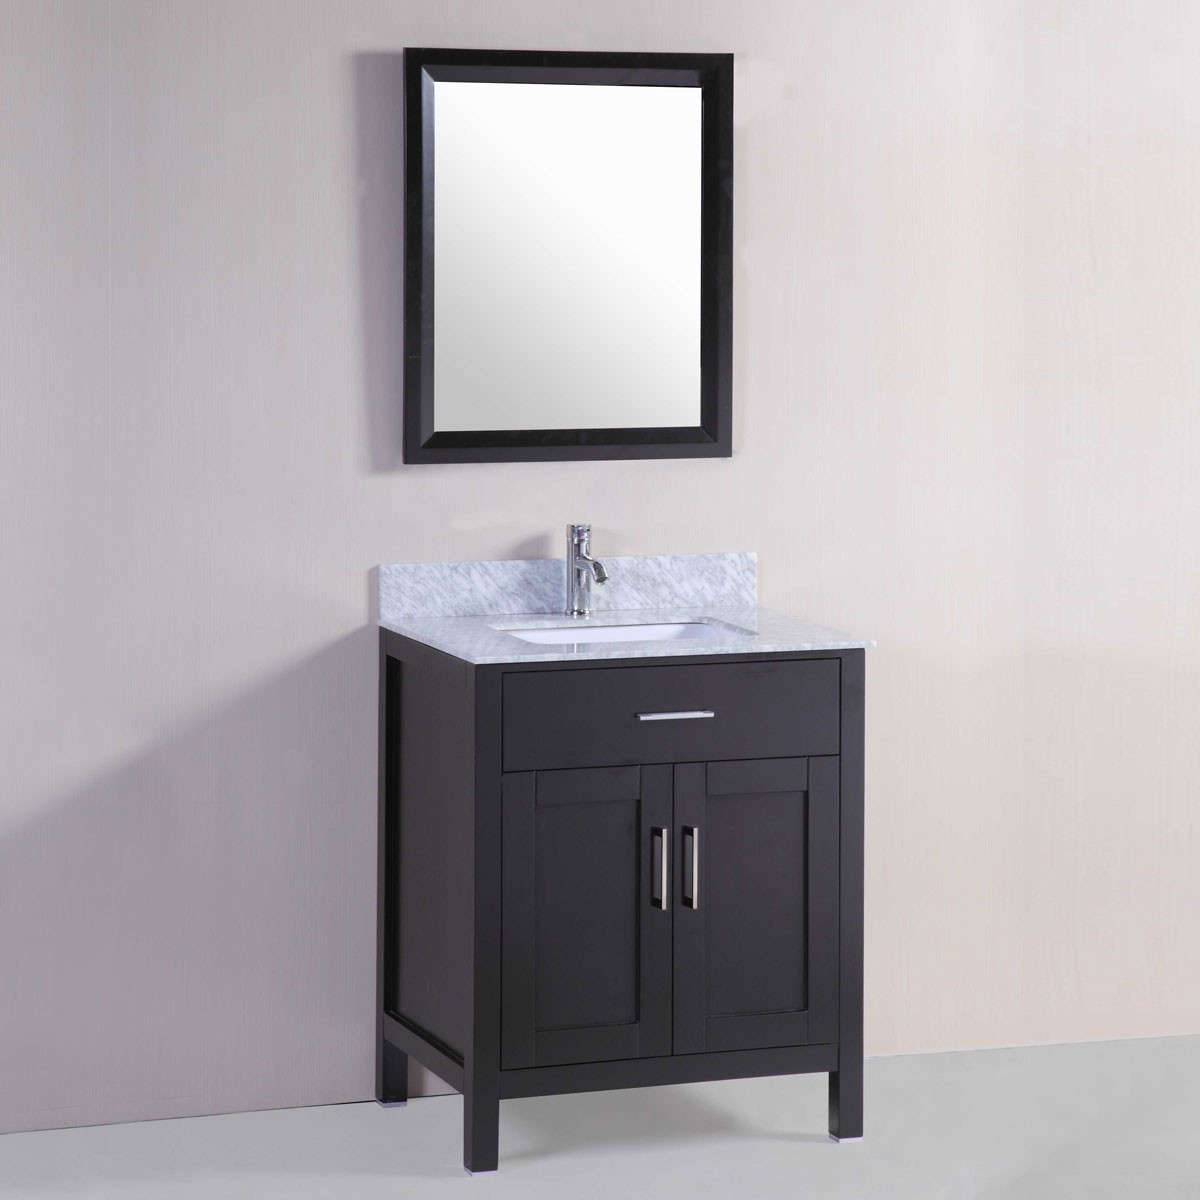 30 po meuble salle de bain sur pieds lavabo simple avec miroir dk t9150 30e set decoraport. Black Bedroom Furniture Sets. Home Design Ideas